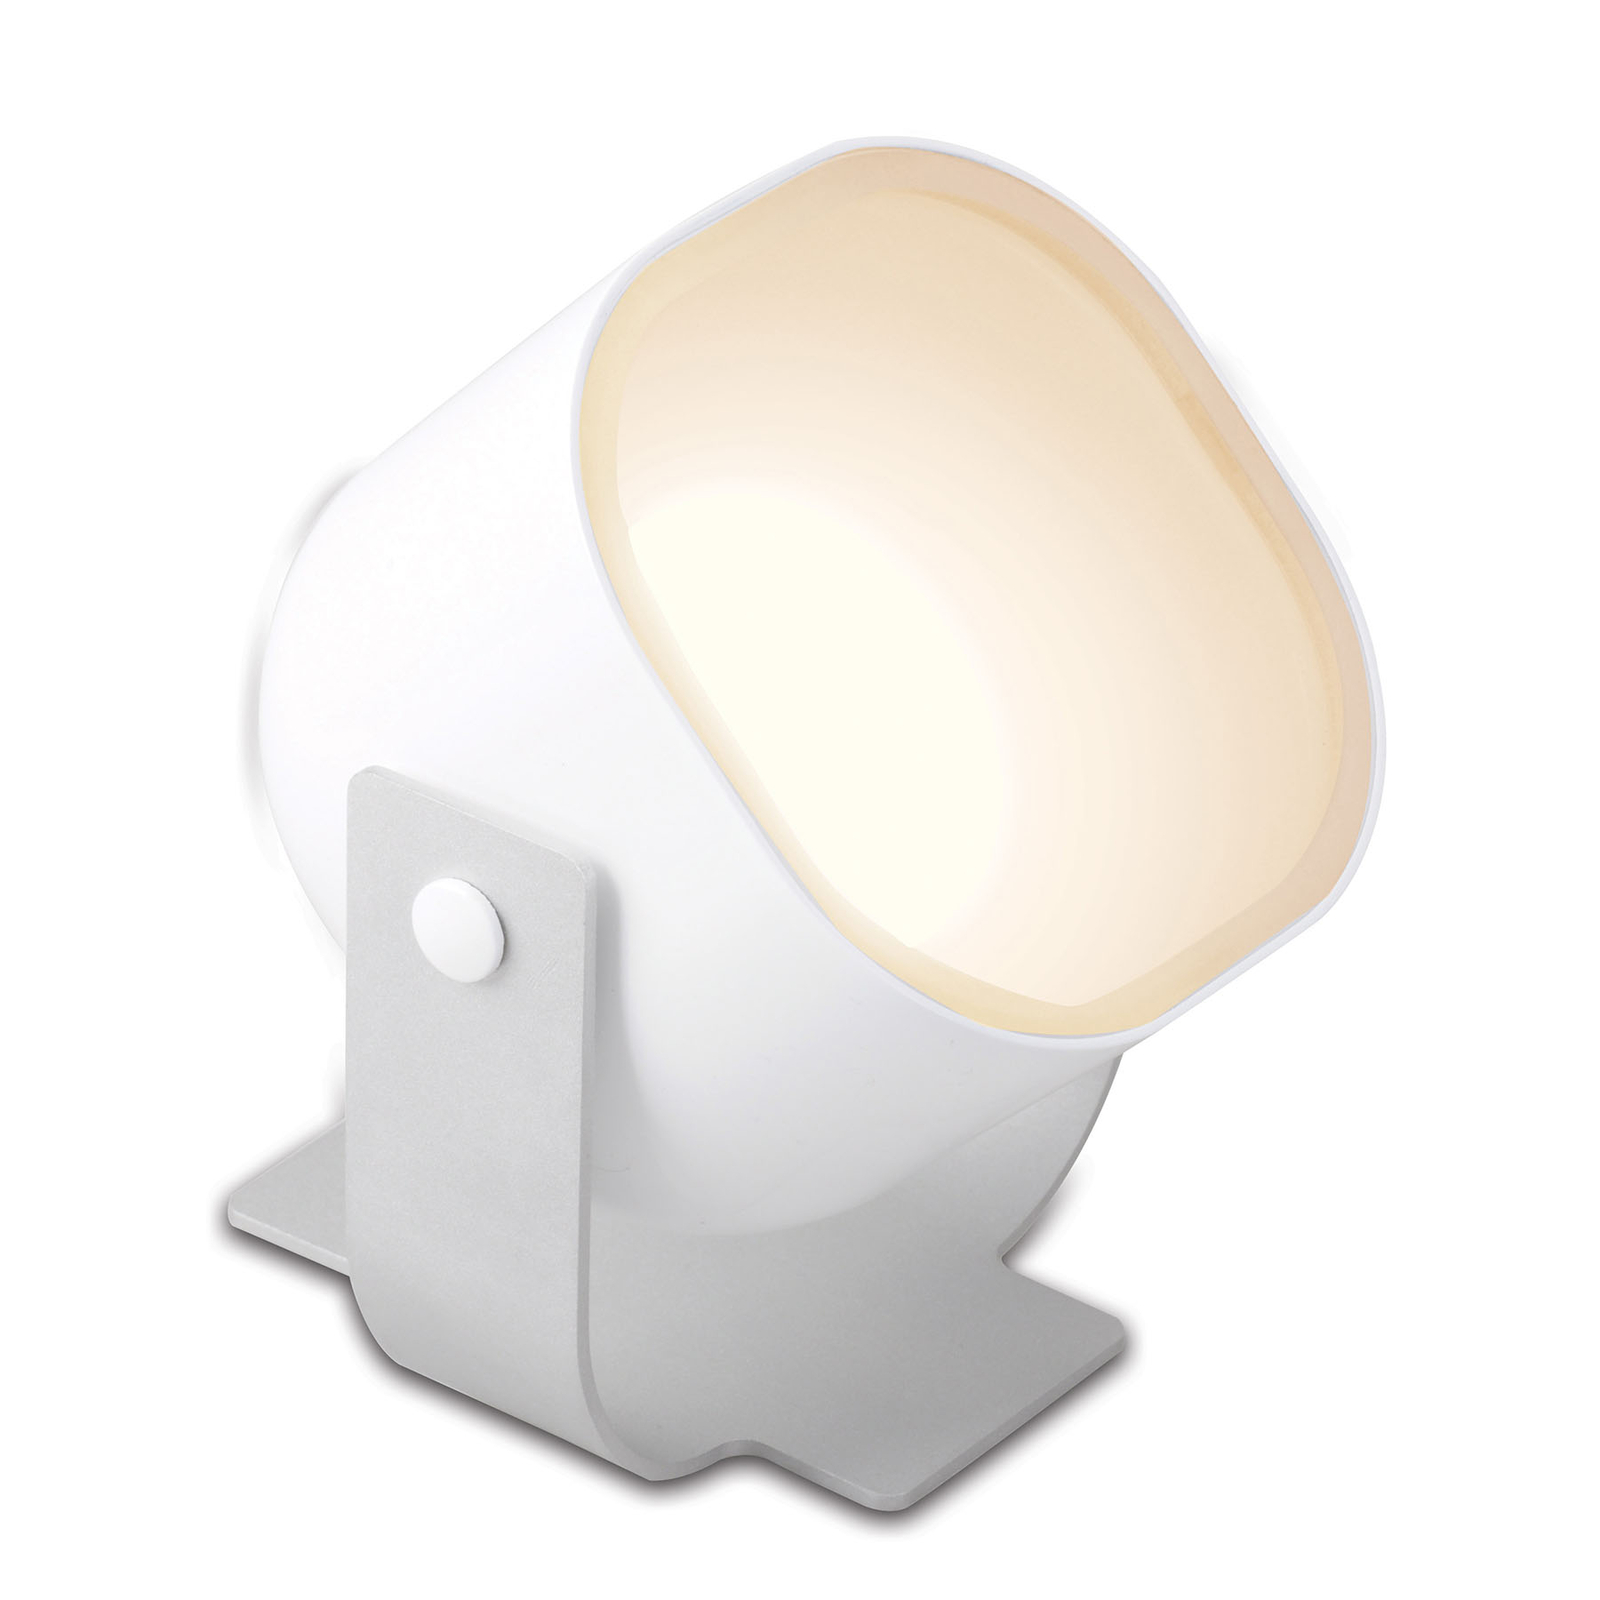 iDual connected Lilac lampa stołowa LED